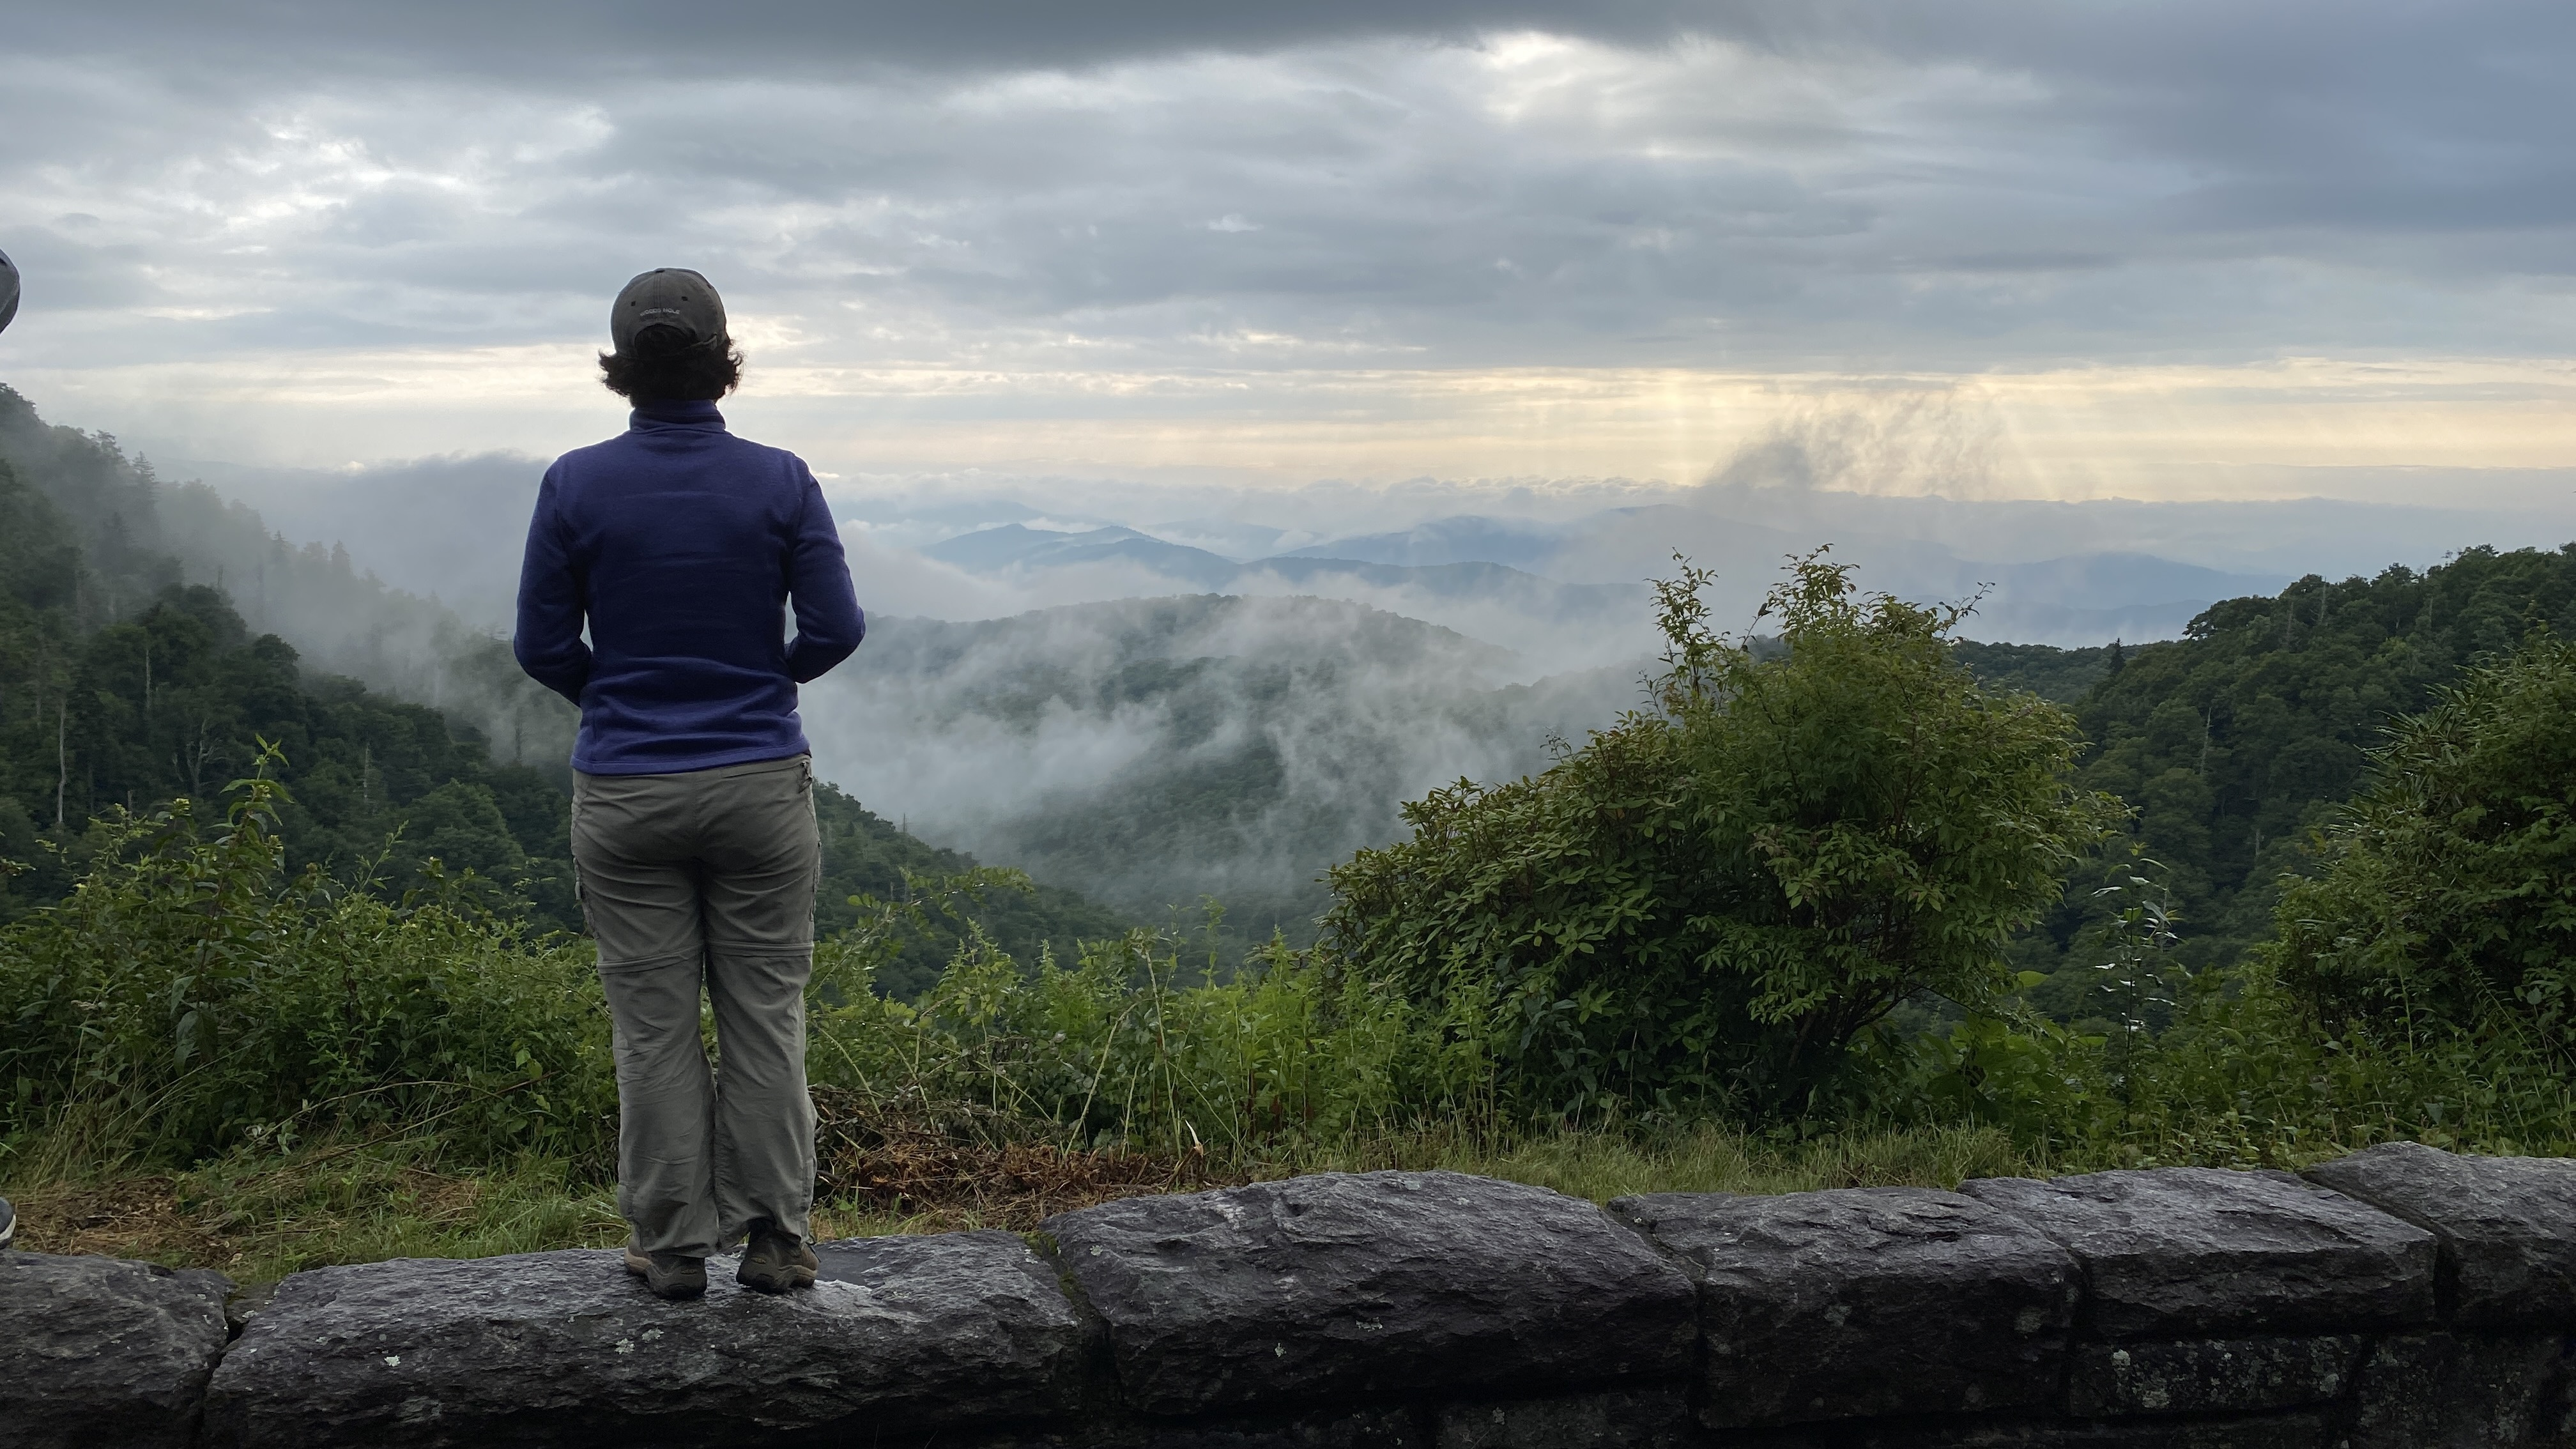 Silhouetted person overlooking mountains and mist